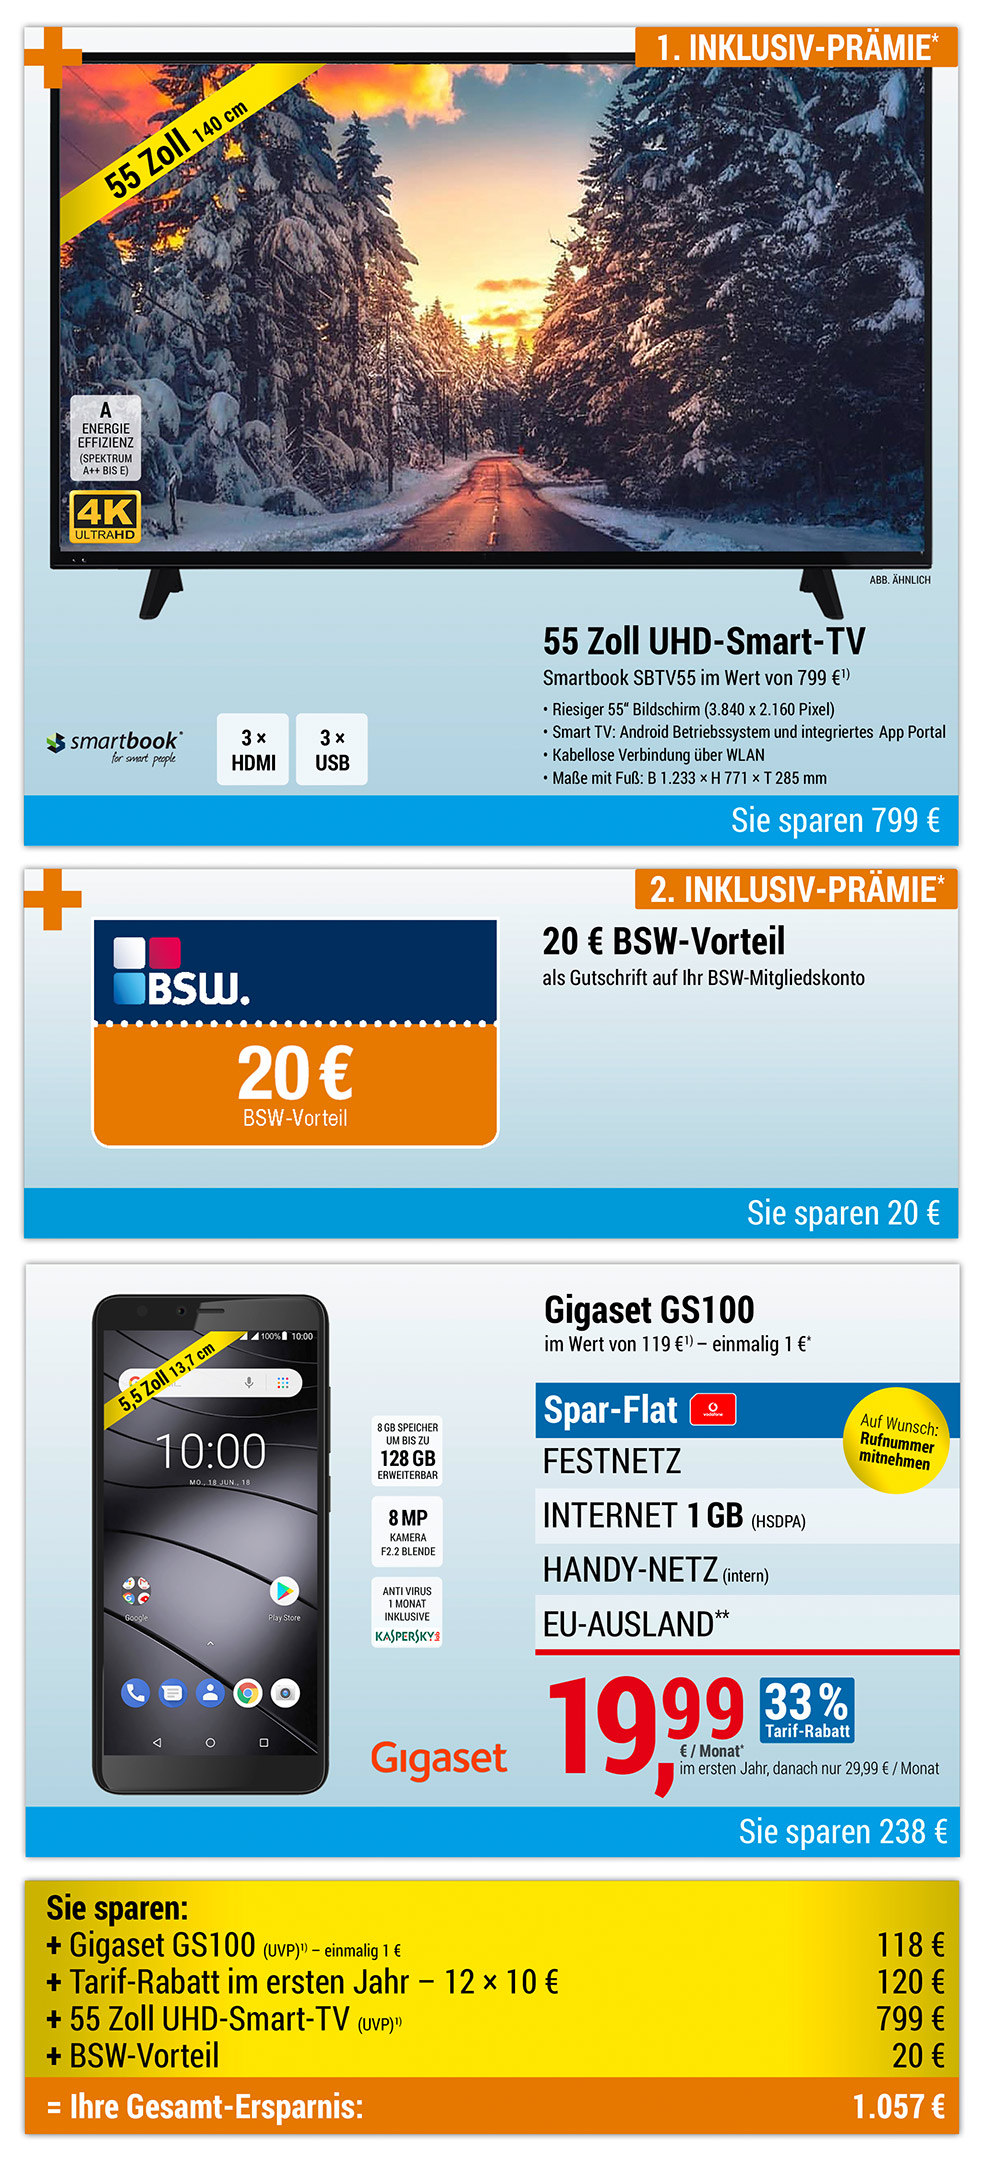 55 Zoll 4K XXL Smart-TV INKLUSIVE + Gigaset GS100